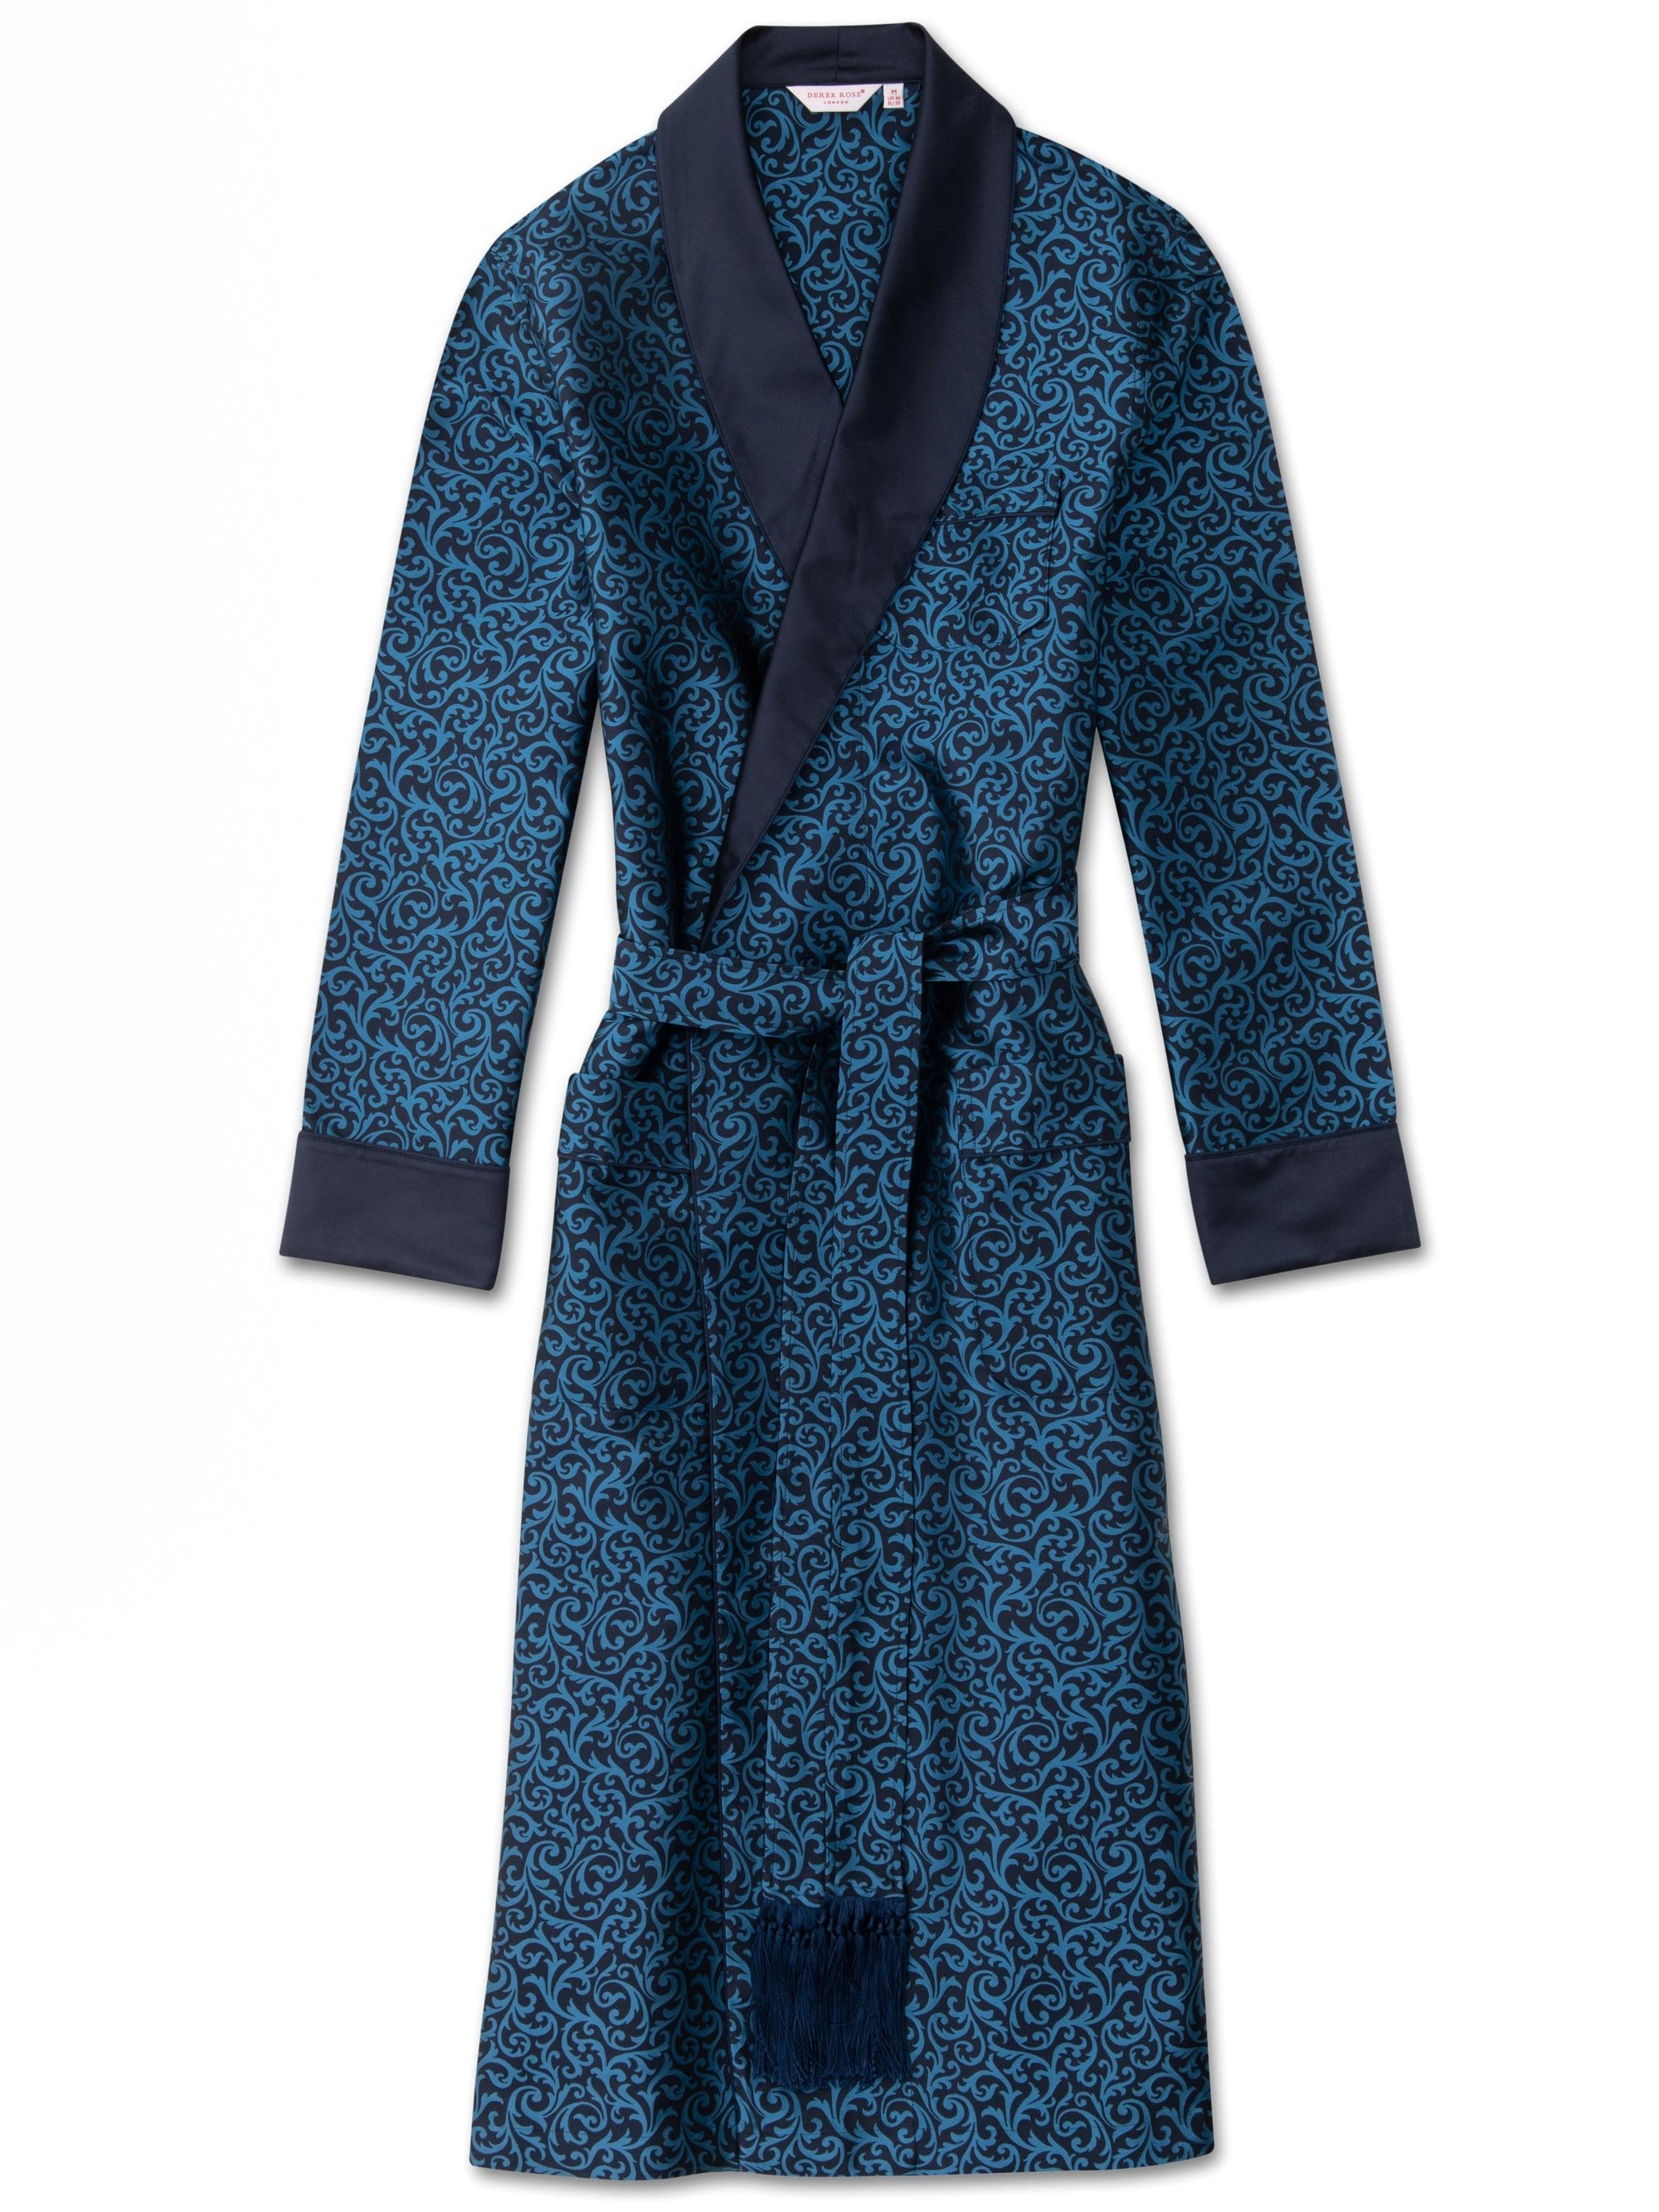 Men's Tasseled Belt Dressing Gown Verona 46 Pure Silk Jacquard Ocean